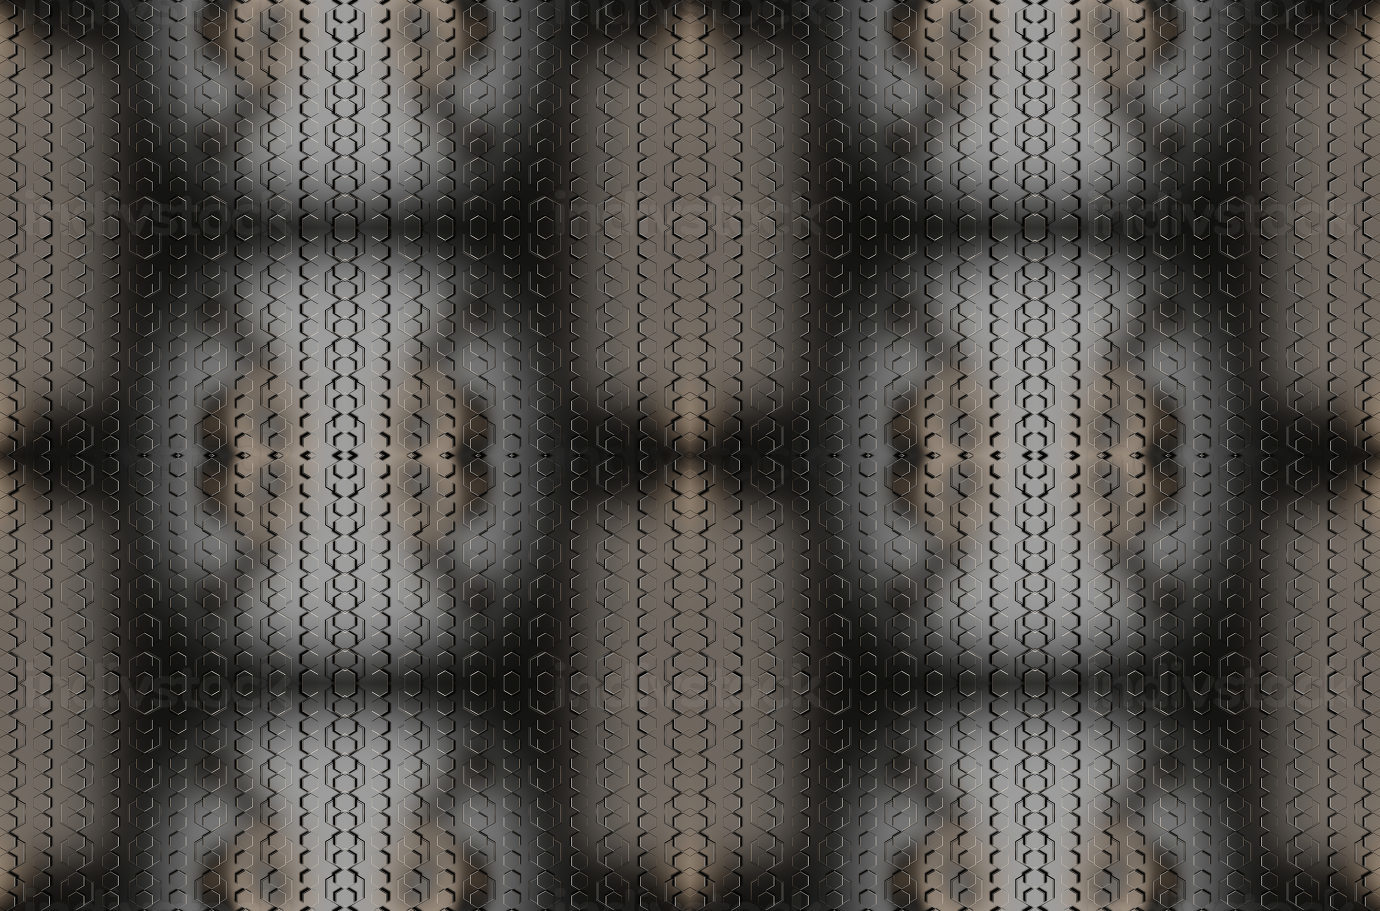 hexagonal grid metallic dark modern background 3d-illustration